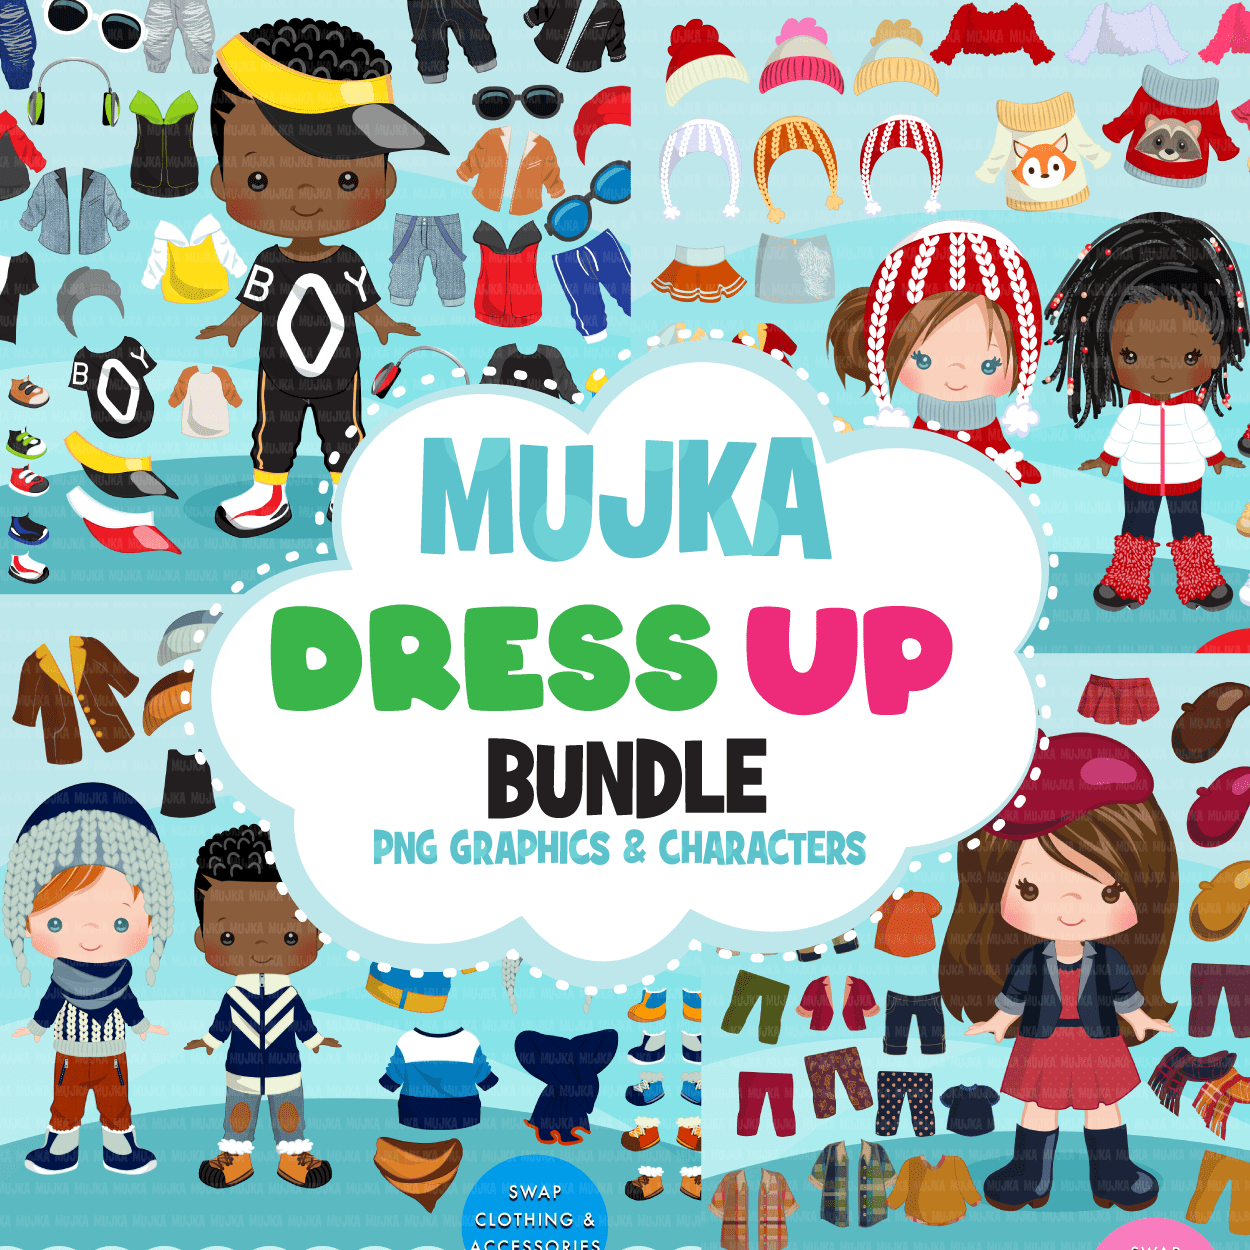 Paper Doll clipart Bundle, Dress up graphics, fashion outfits for kids girl and boy png sublimation graphics